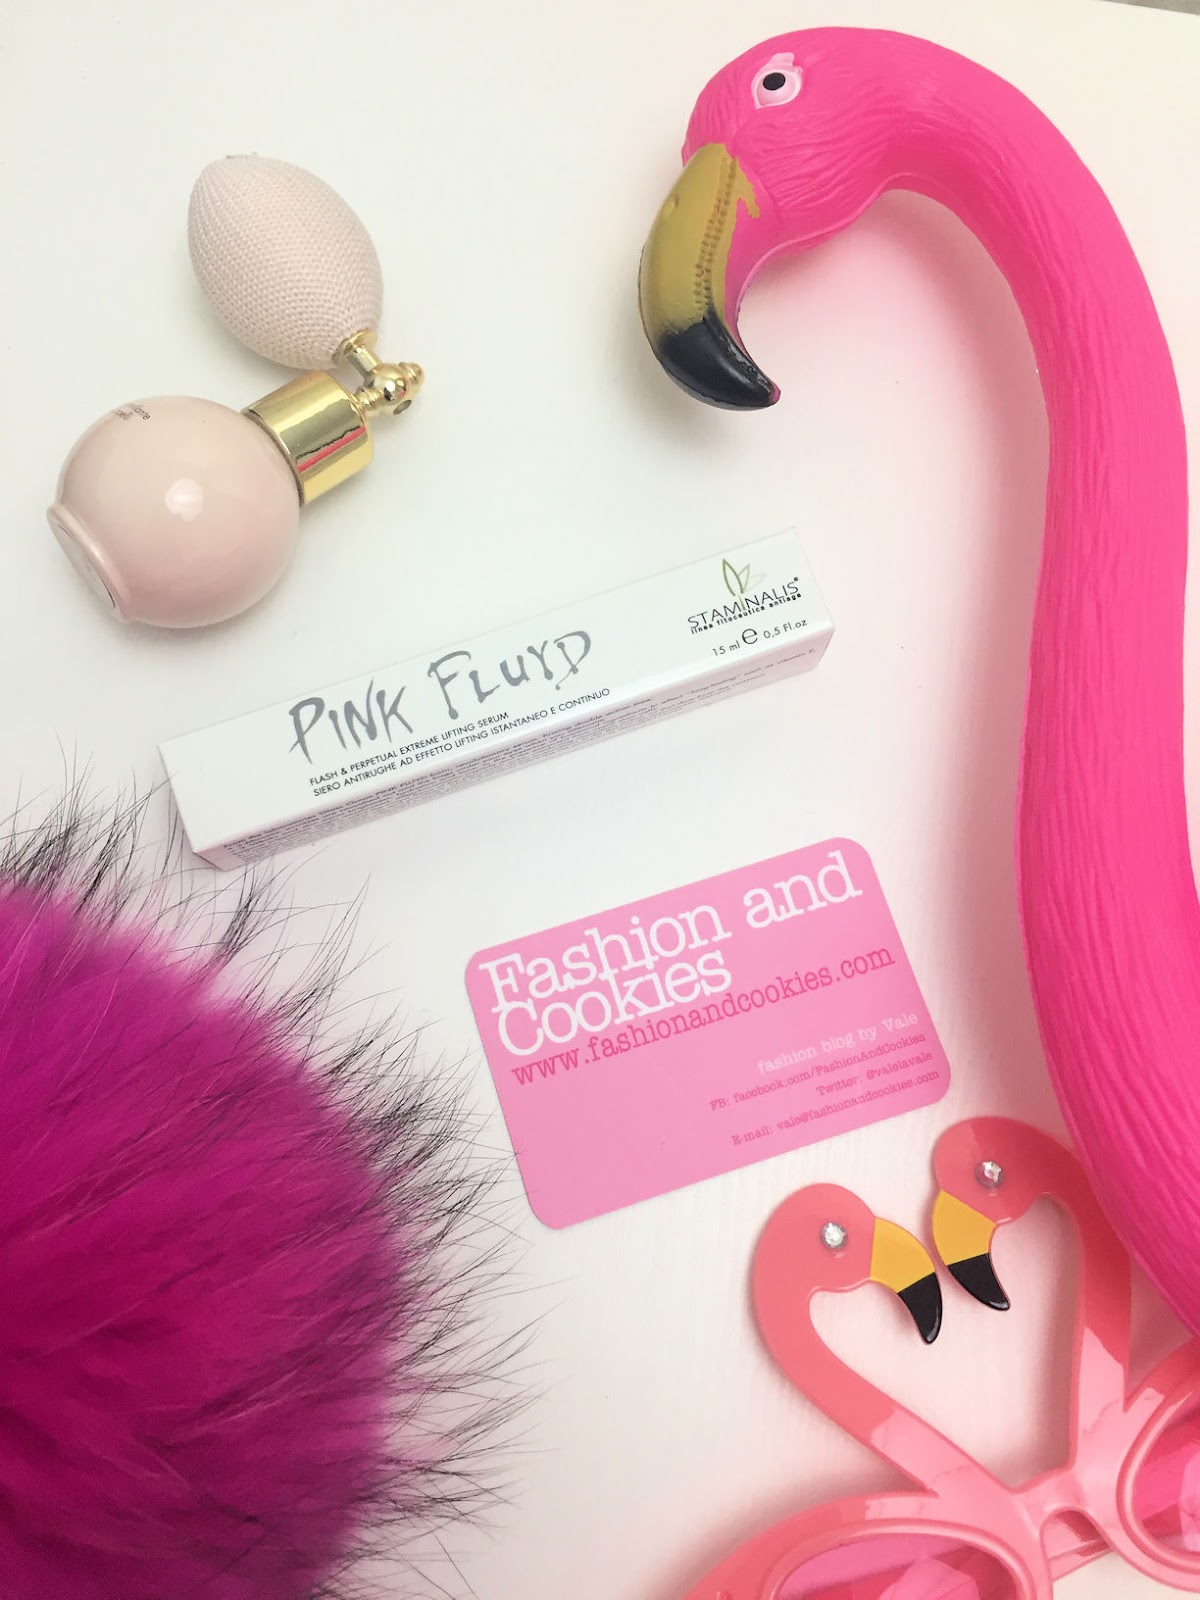 Cancella le rughe agli occhi in 3 minuti con il siero Pink Fluyd, la review su Fashion and Cookies beauty blog, beauty blogger